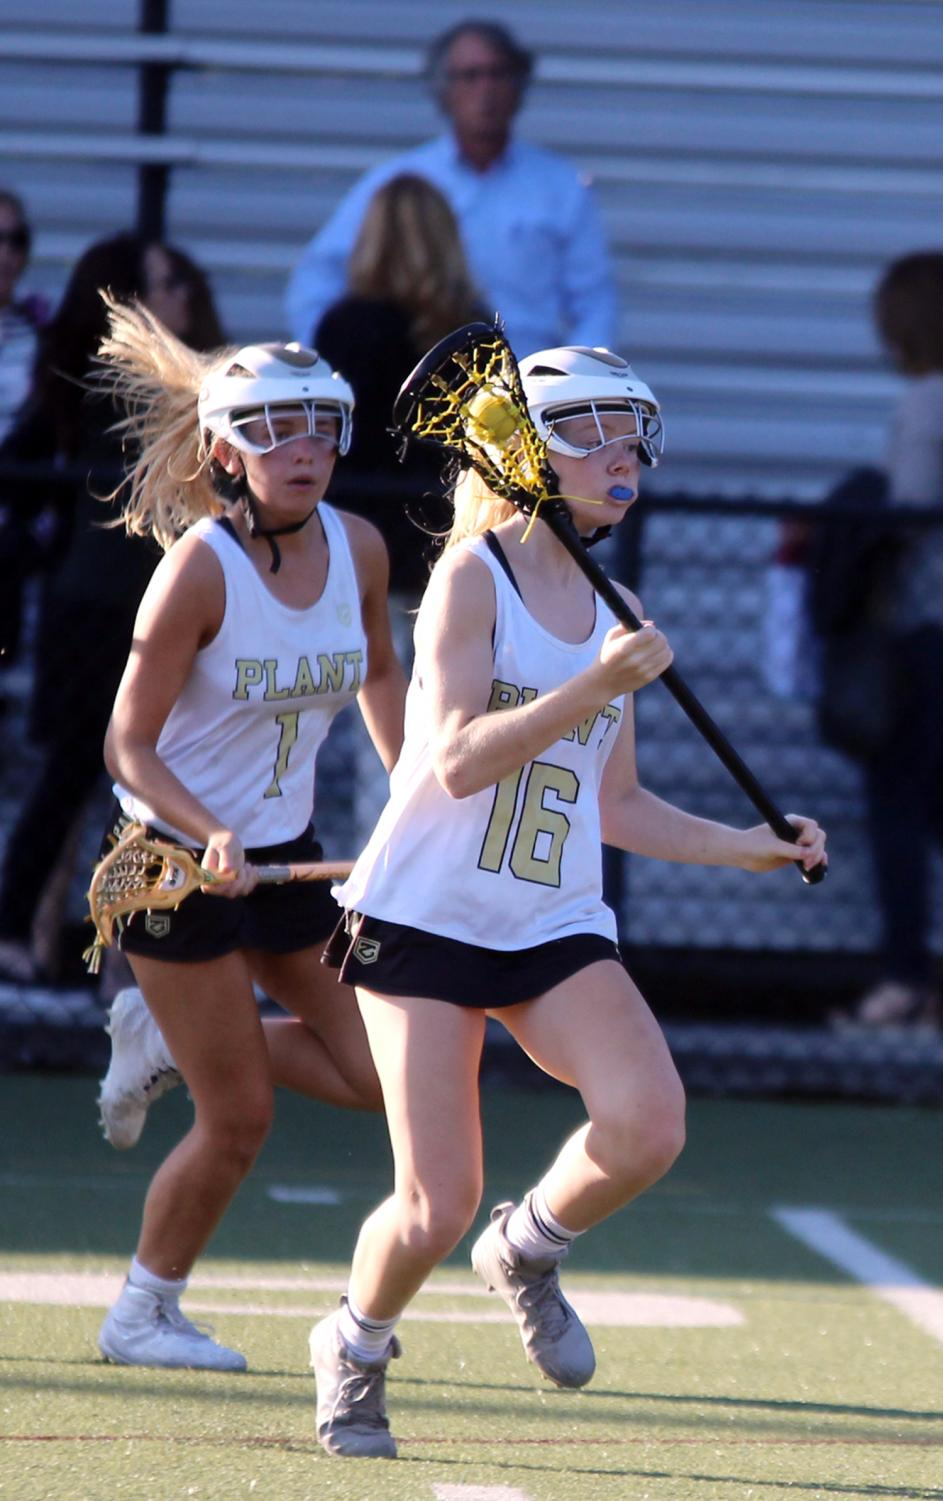 Running+downfield%2C+freshman+Ashley+Quinn+looks+for+an+open+shot+April+2+at+Dad%E2%80%99s+Stadium.+The+girls+varsity+lacrosse+lost+to+Berkeley+High+School+7-6.+